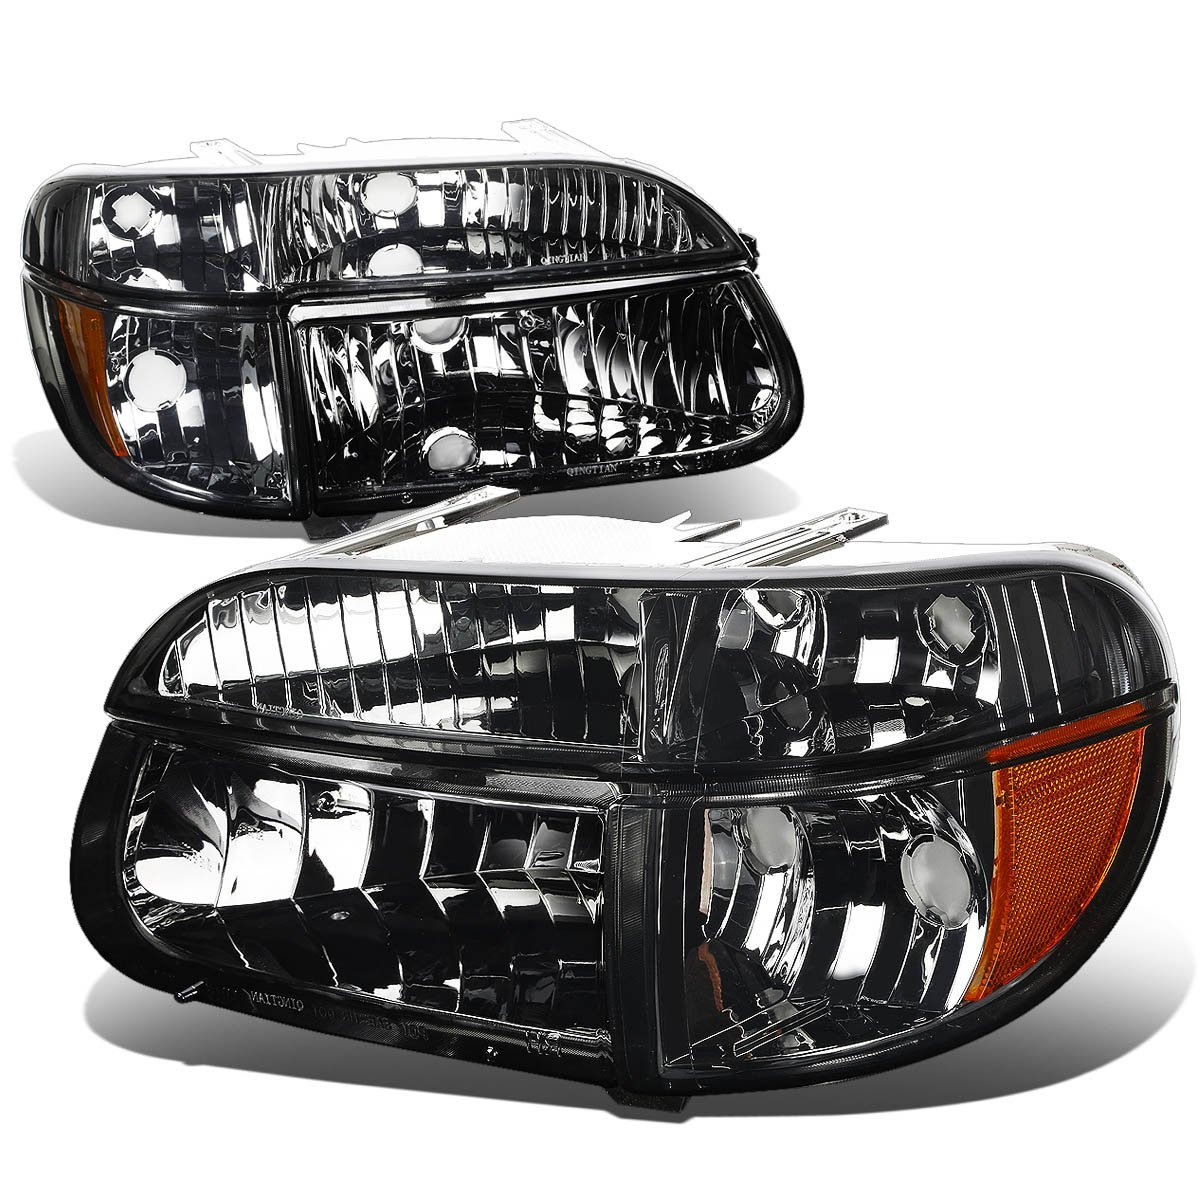 95 01 Ford Explorer Euro Crystal Headlights Combo Smoked Click To Enlarge